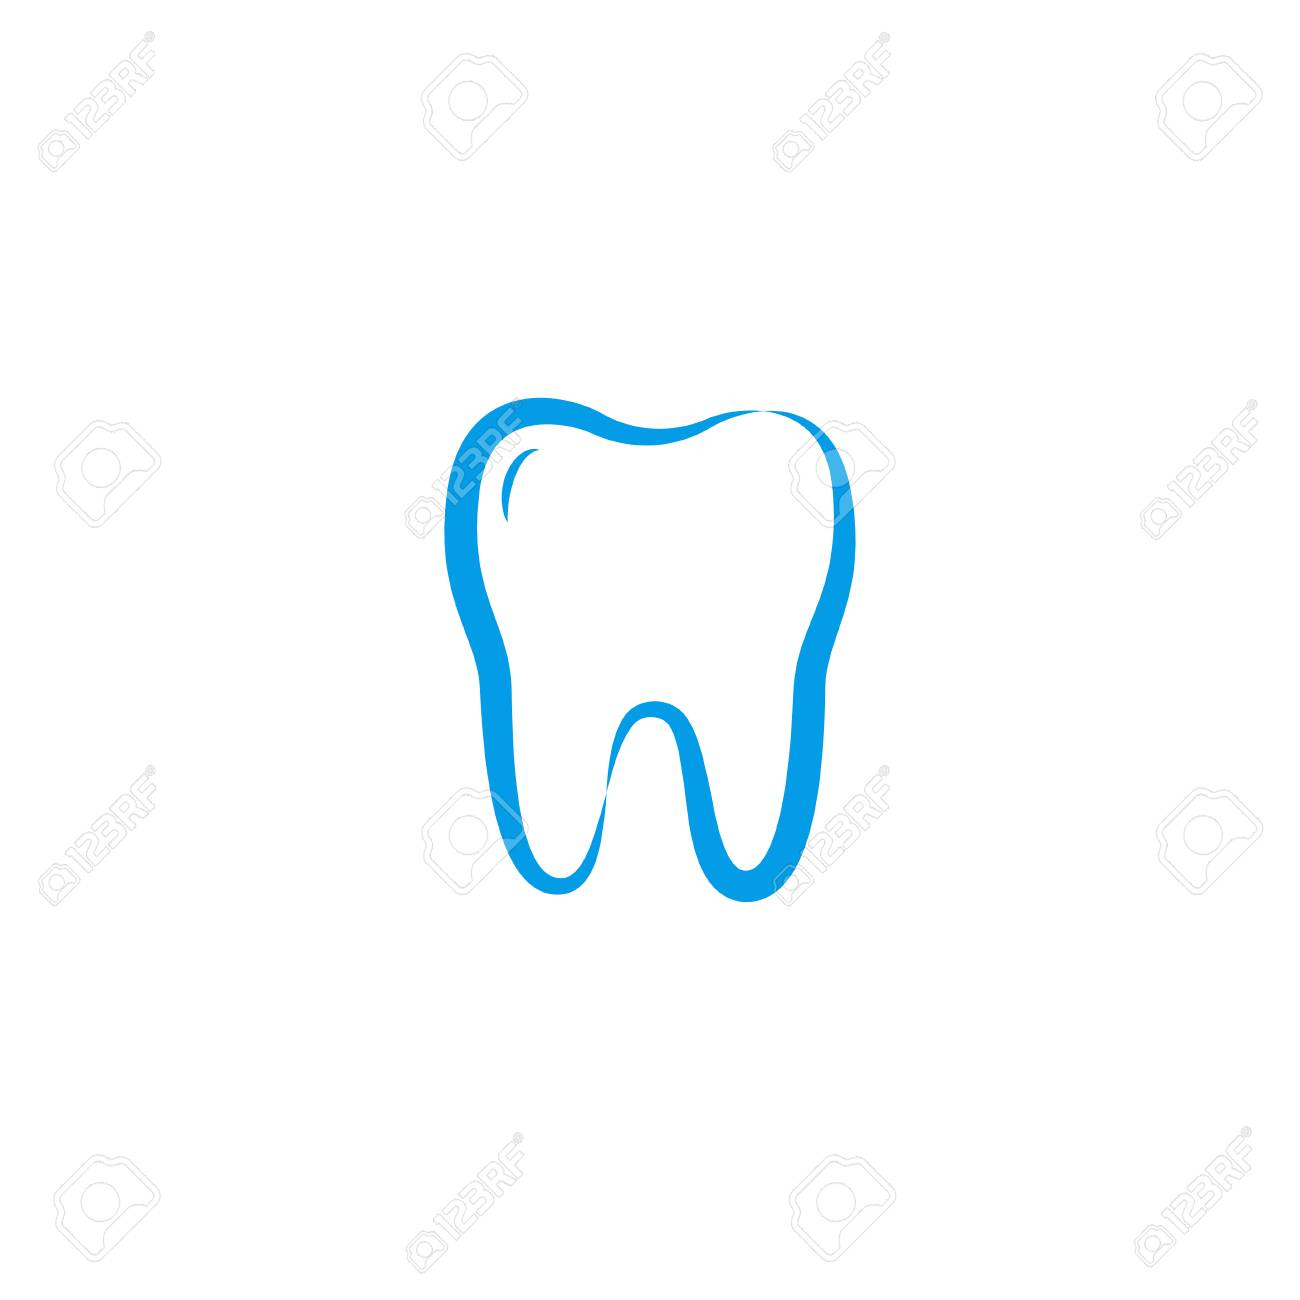 Illustration Of Clean Dental Tooth Logo Design Template Royalty Free